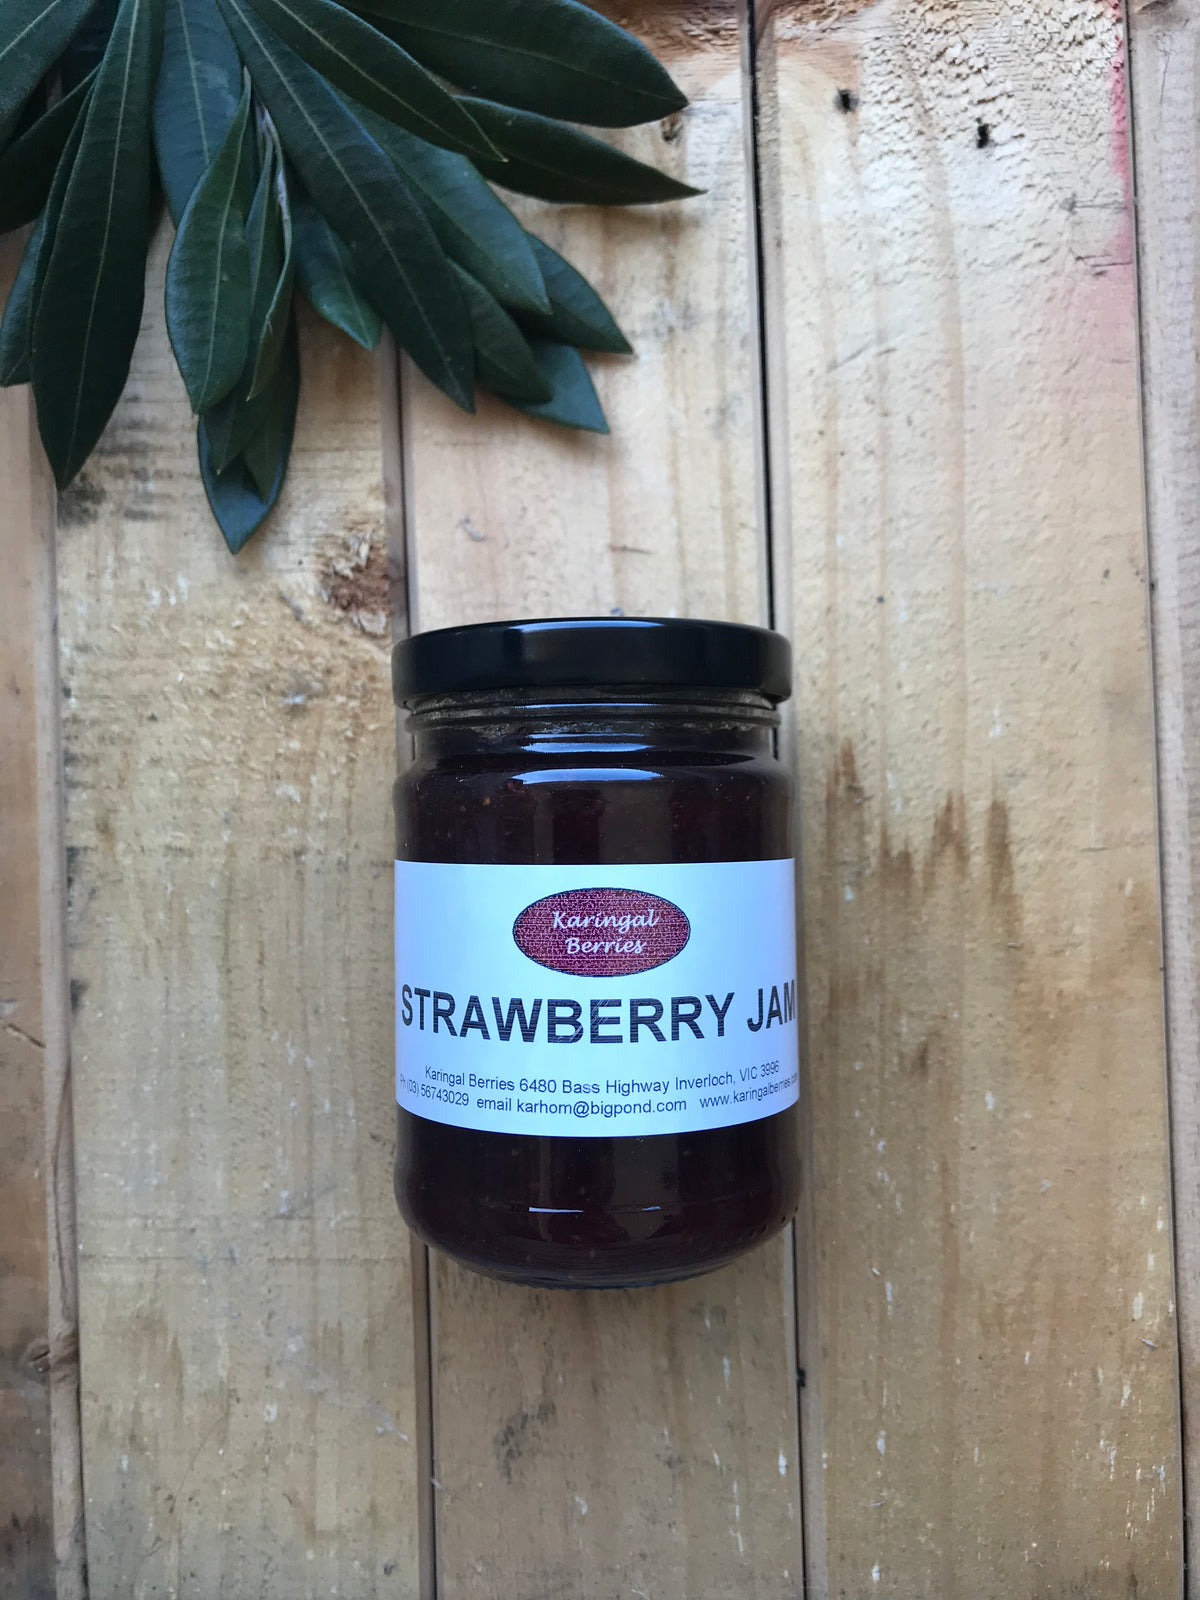 Strawberry Jam 290g | Vaughans Cafe Deli & Online Store | Inverloch